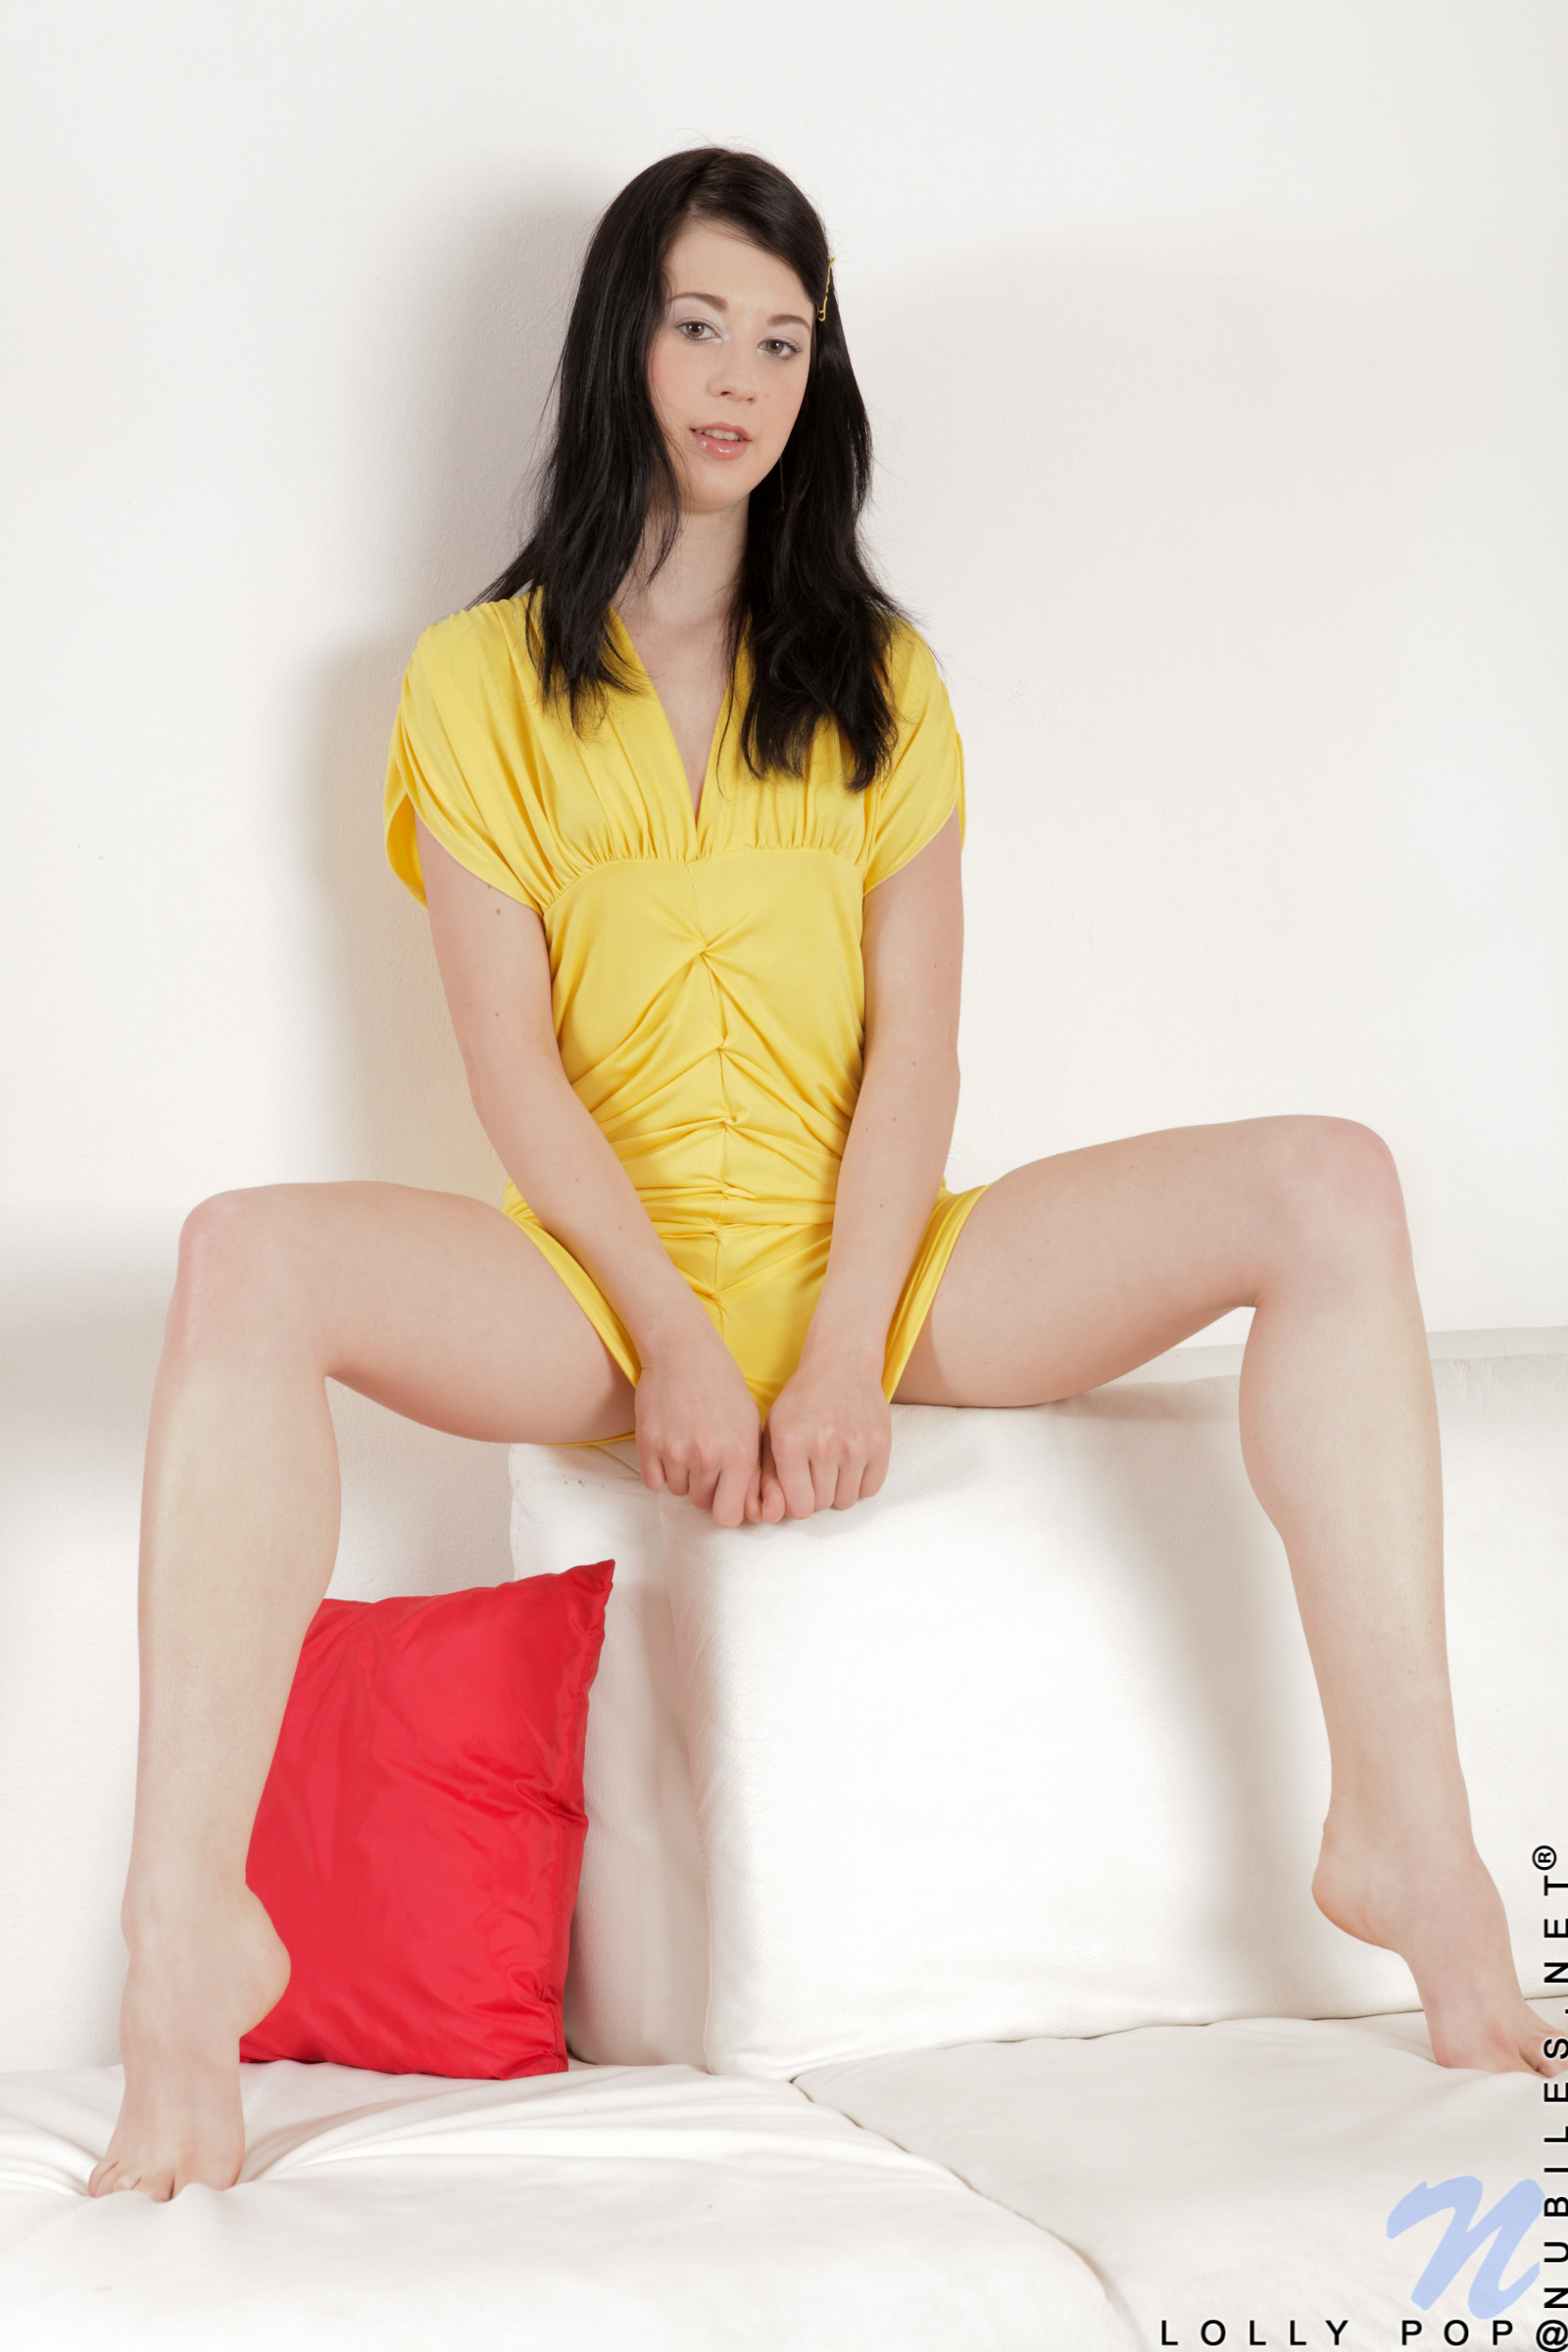 Lolly trixie nude model the excellent